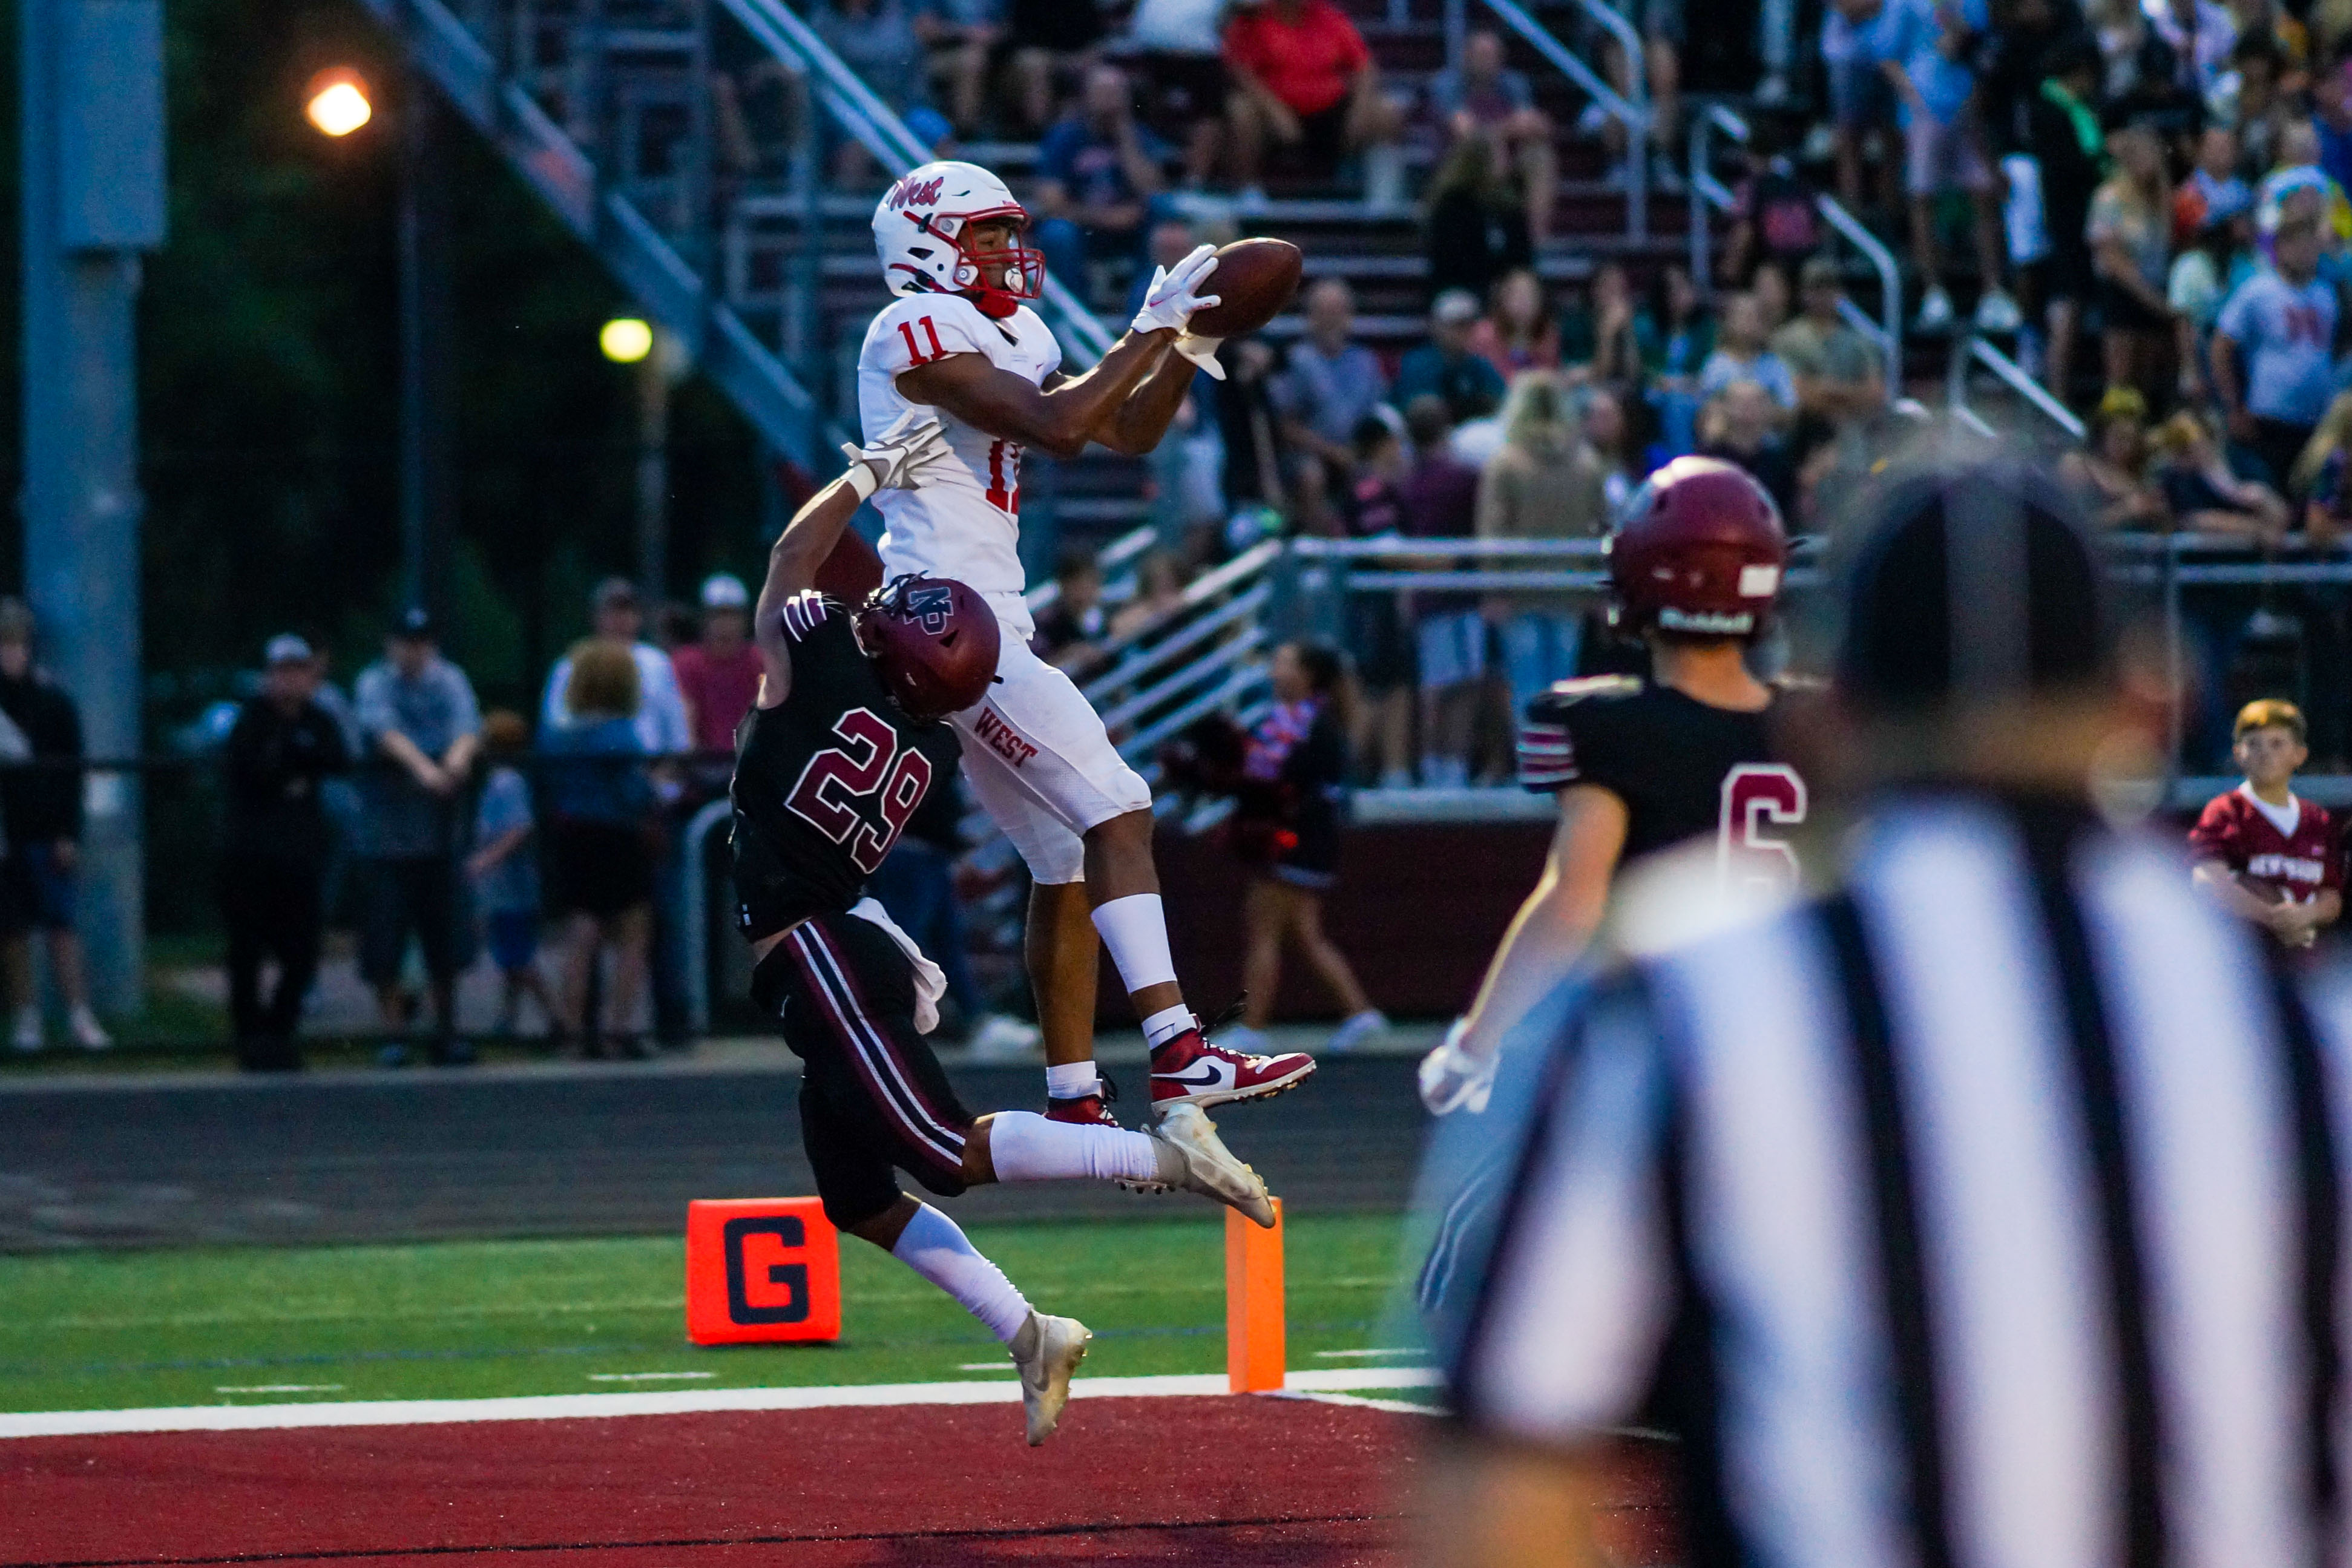 Mankato West's Mekhi Collins (11) hauls in one of his three touchdown receptions Friday night in a 41-7 victory over New Prague. Photo by Korey McDermott, SportsEngine